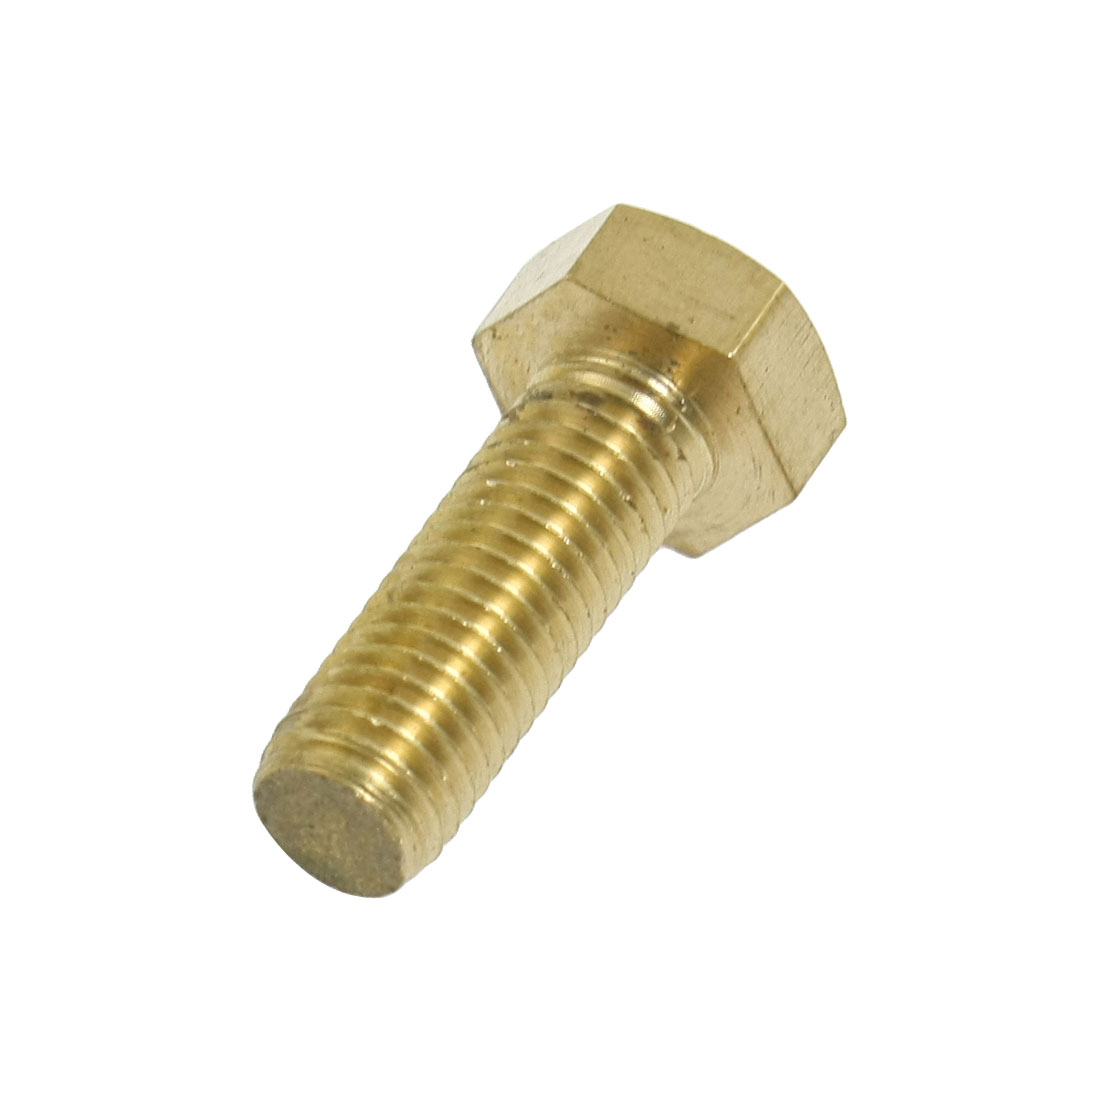 Flat Tip Brass Hex Cap Screw Bolts Fastener 12mm x 35mm